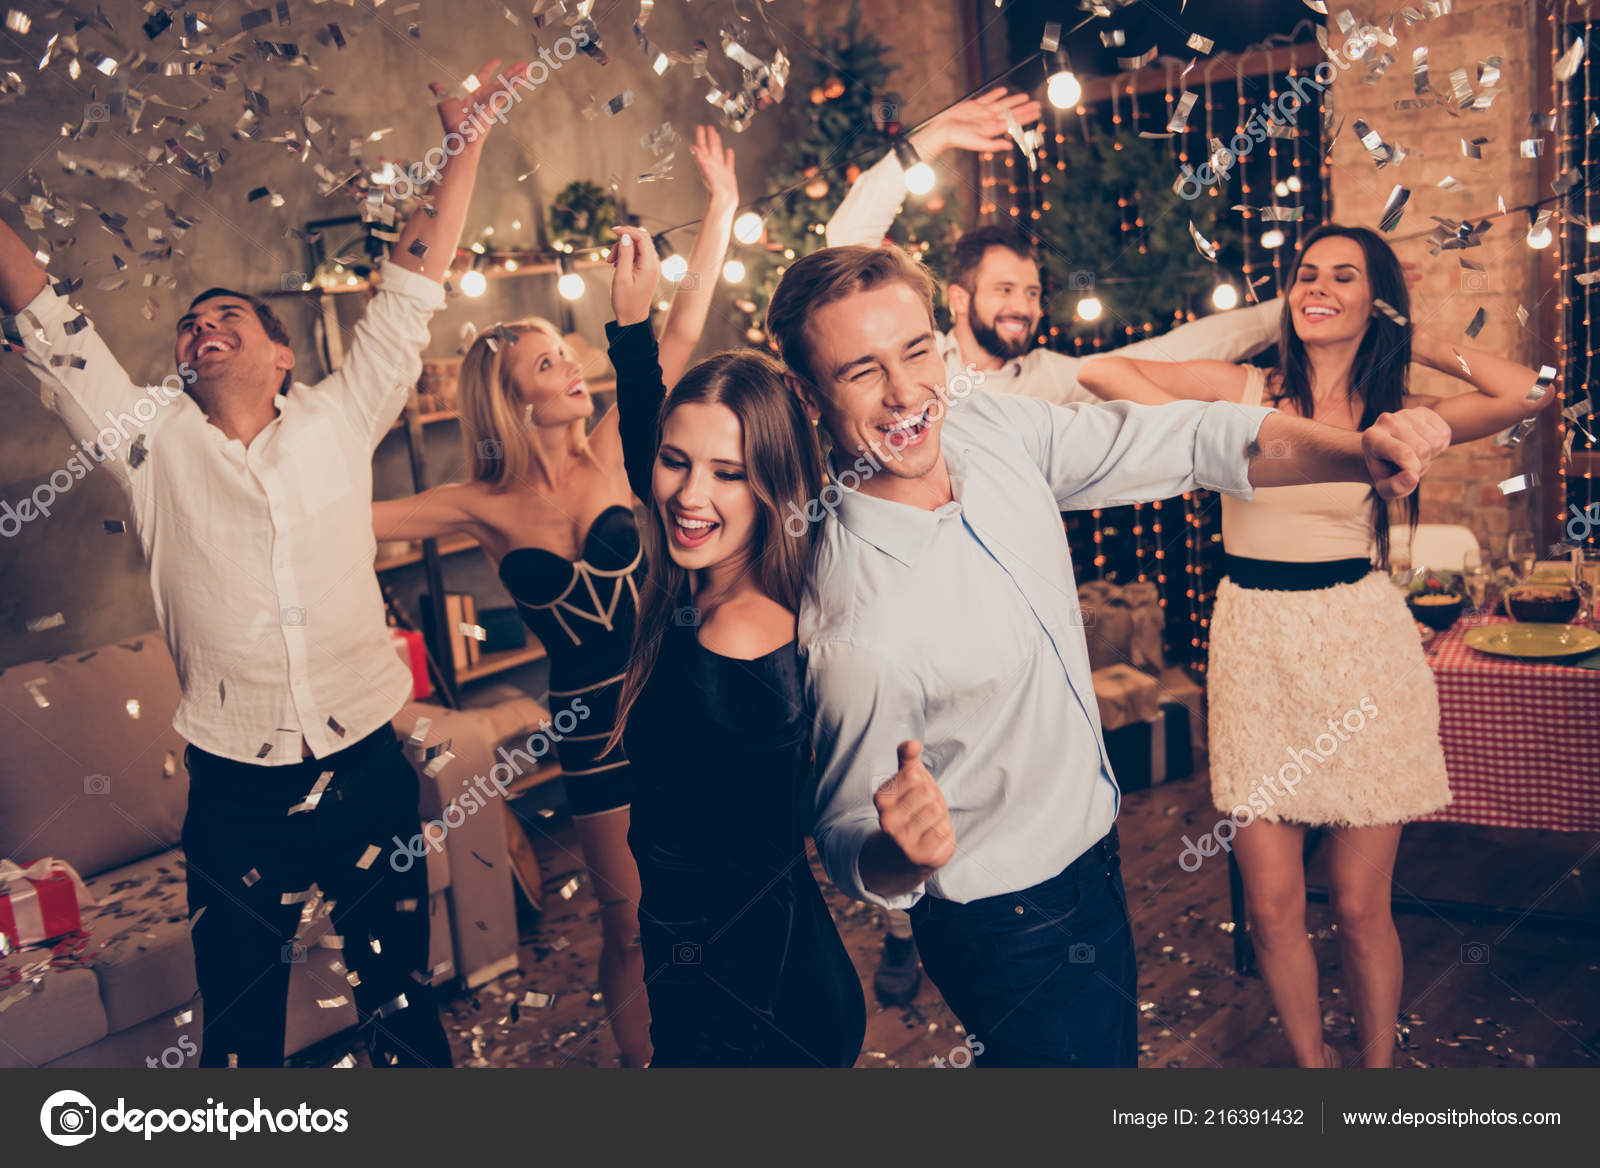 Beautiful Charmingly party wears for evening celebrations fotos